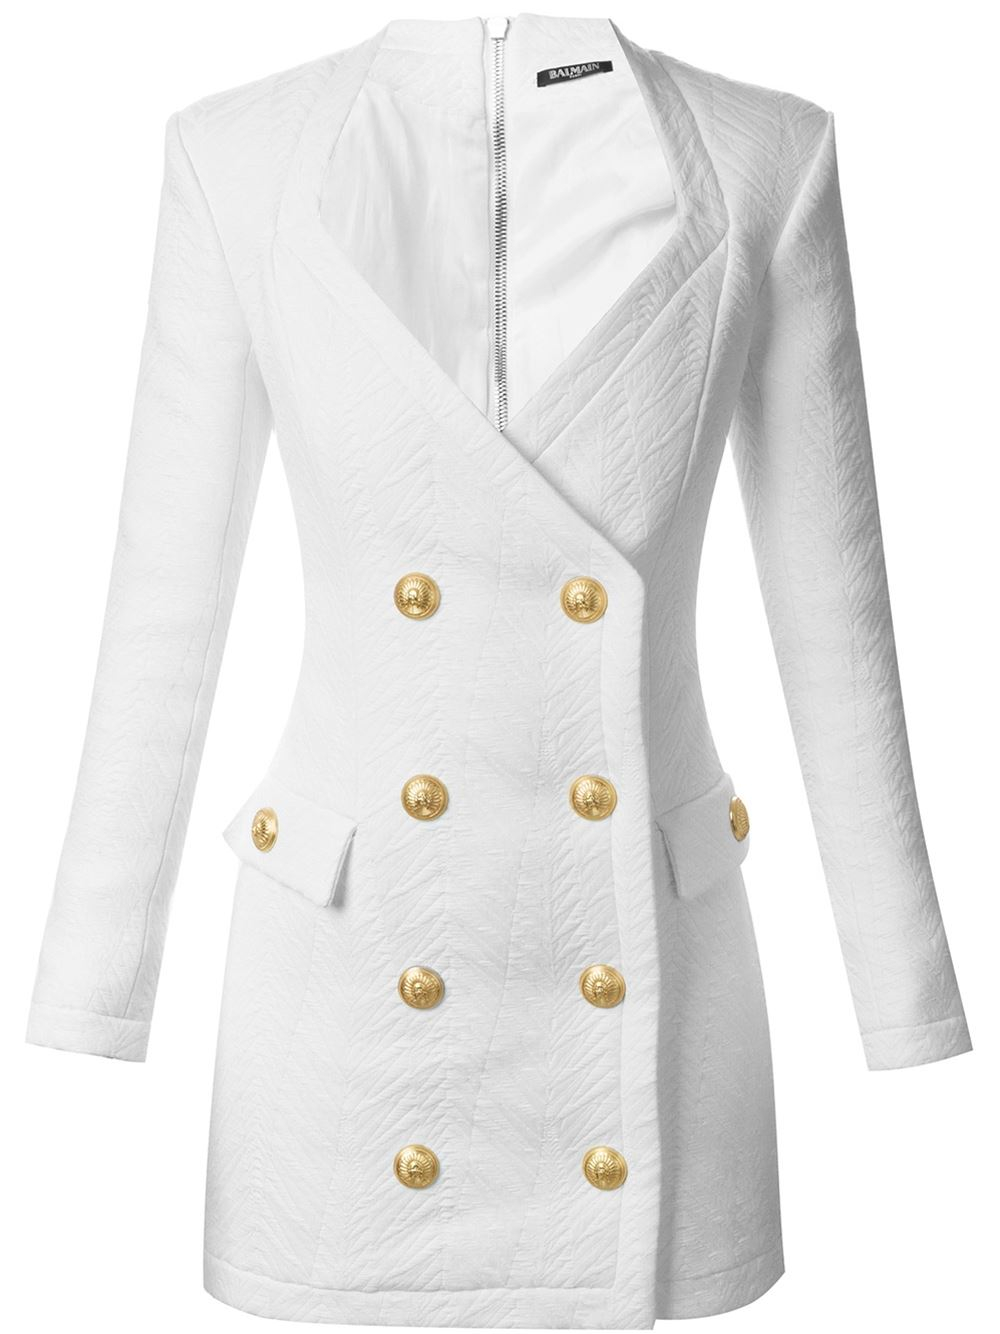 Shop discounted balmain dress & more on nakedprogrammzce.cf Save money on millions of top products at low prices, worldwide for over 10 years.